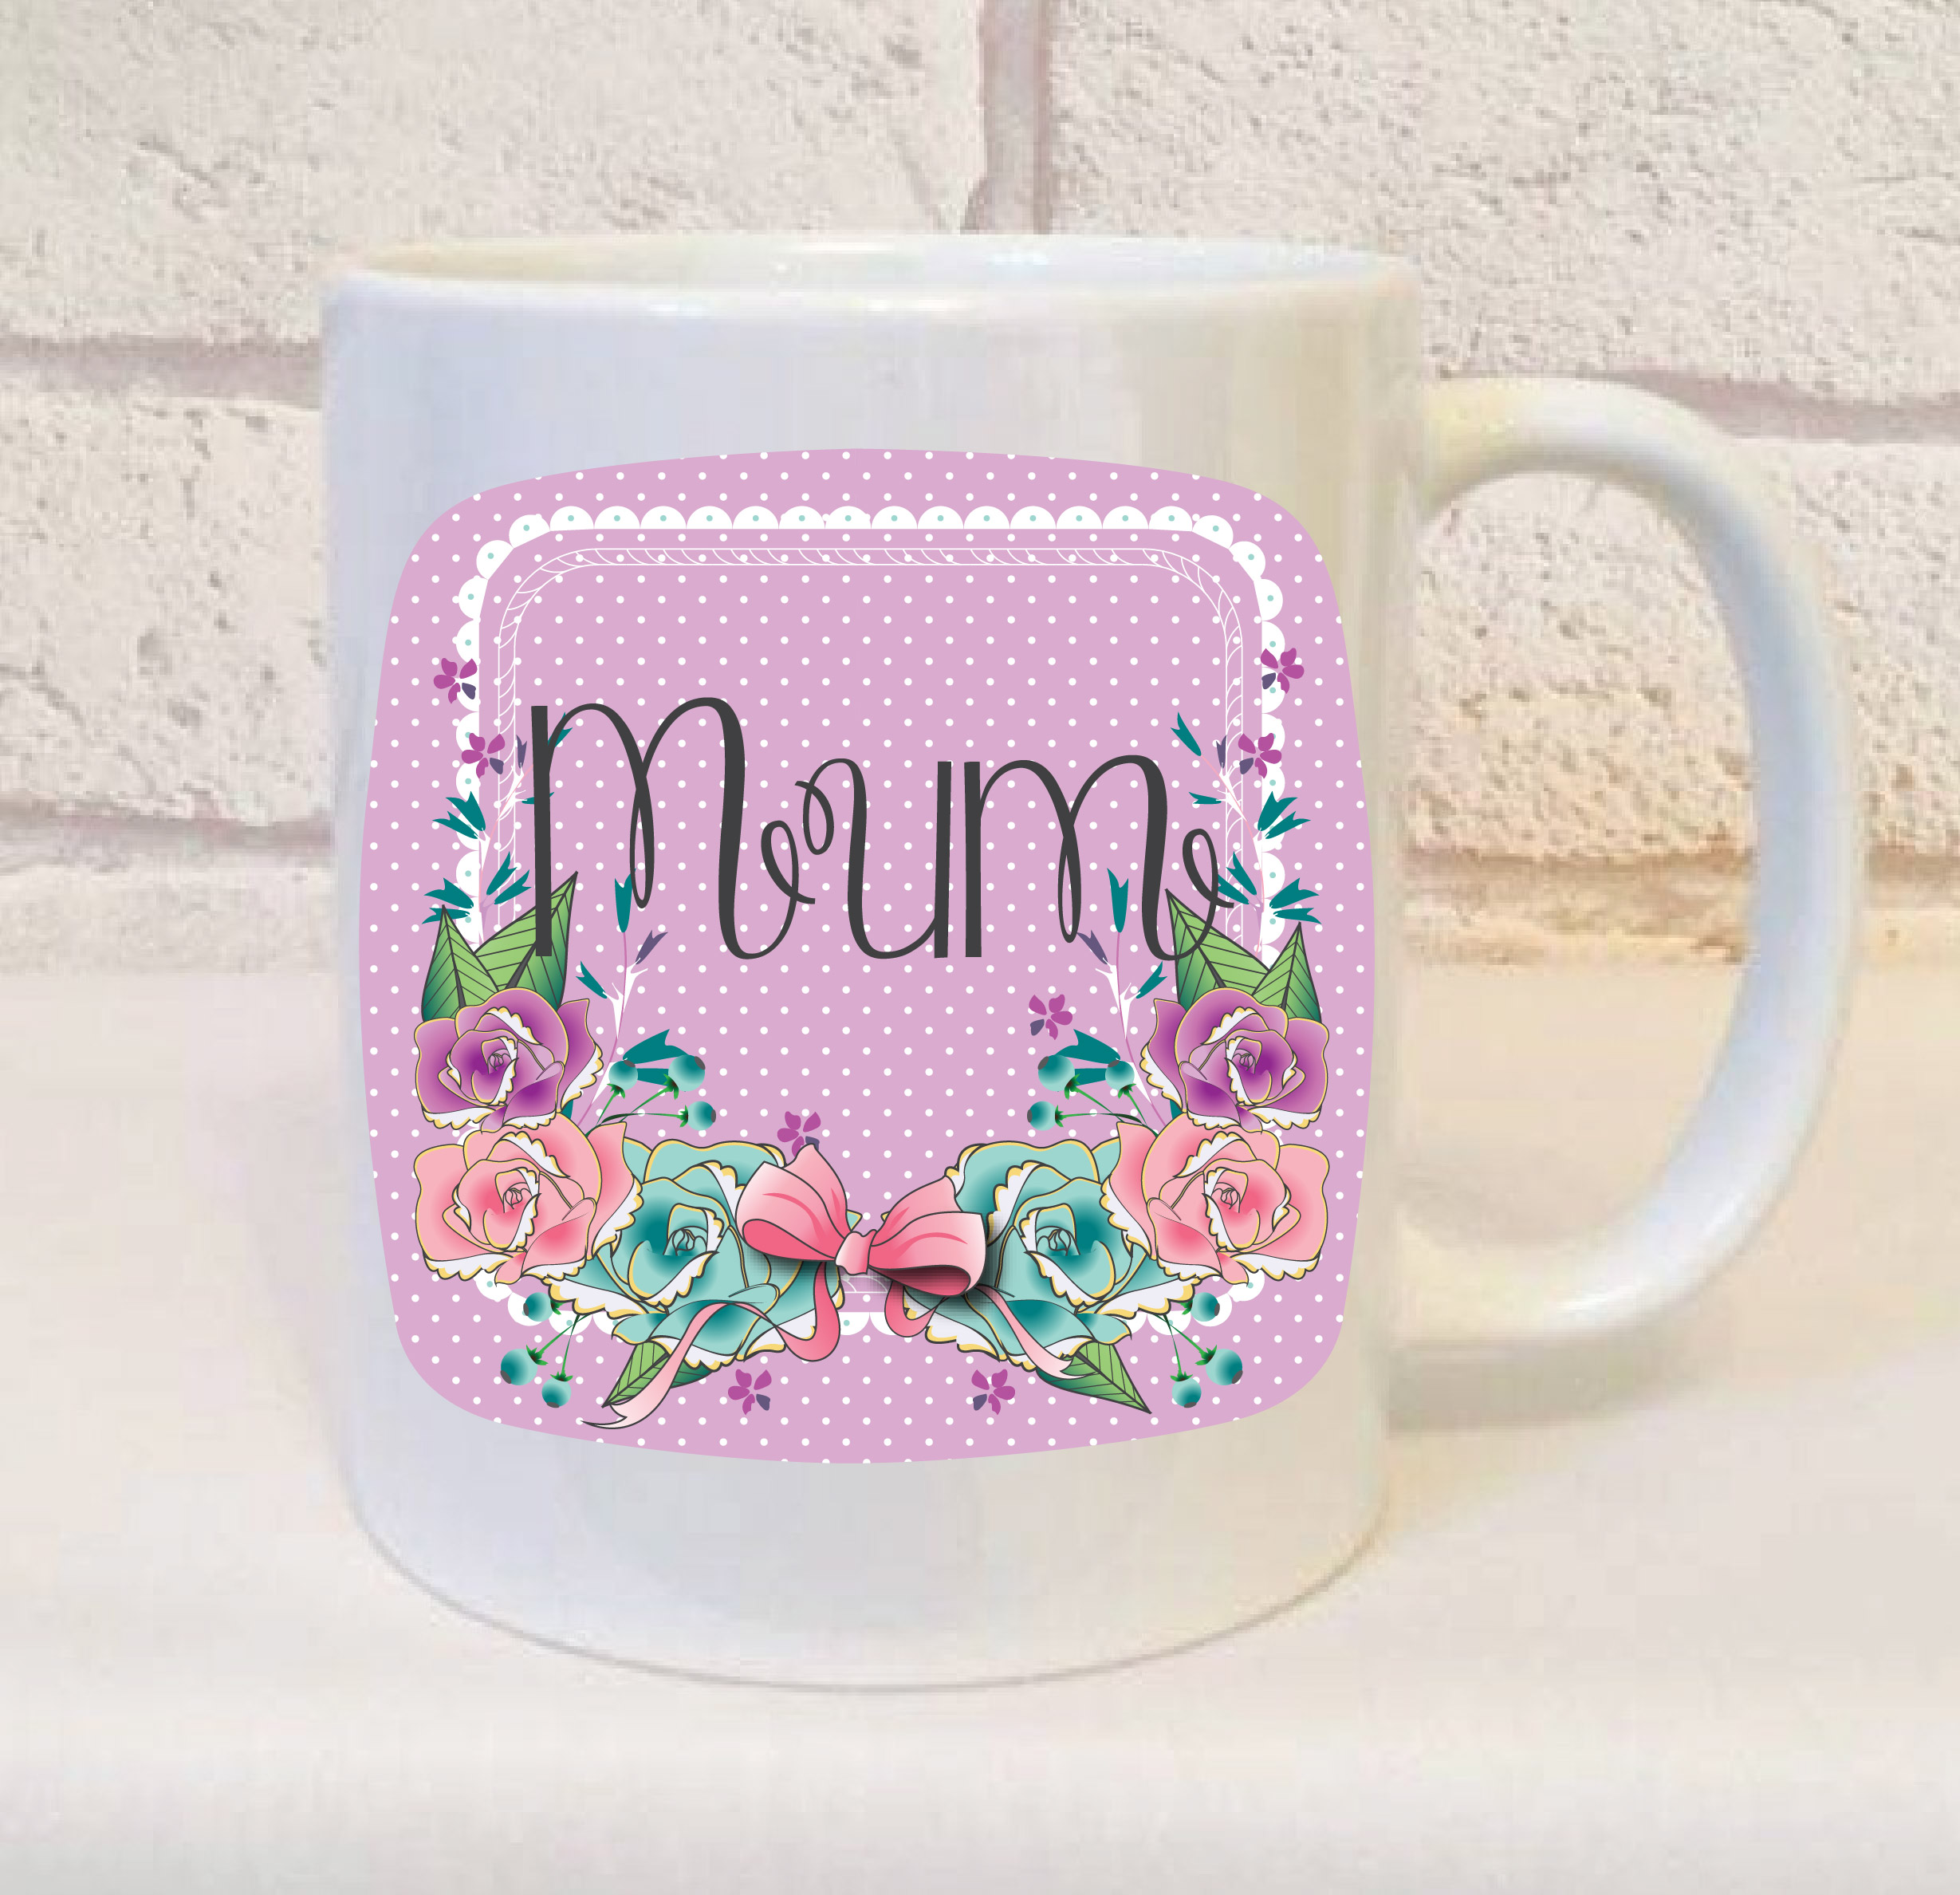 Mum Gift Ideas By Beautifully Obscene